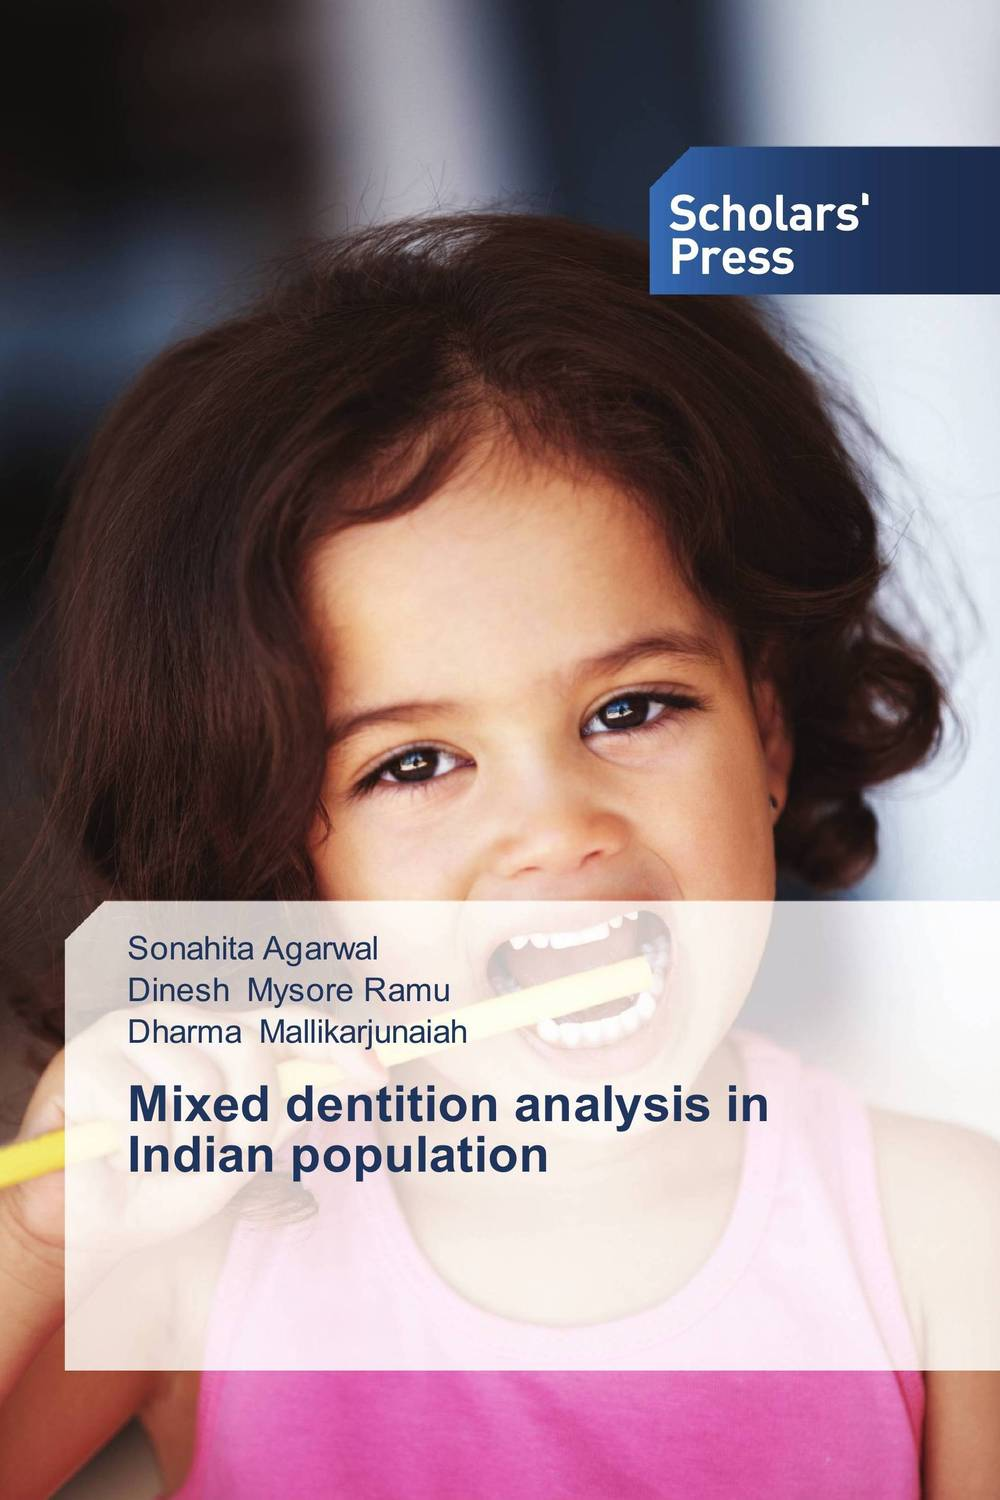 Mixed dentition analysis in Indian population